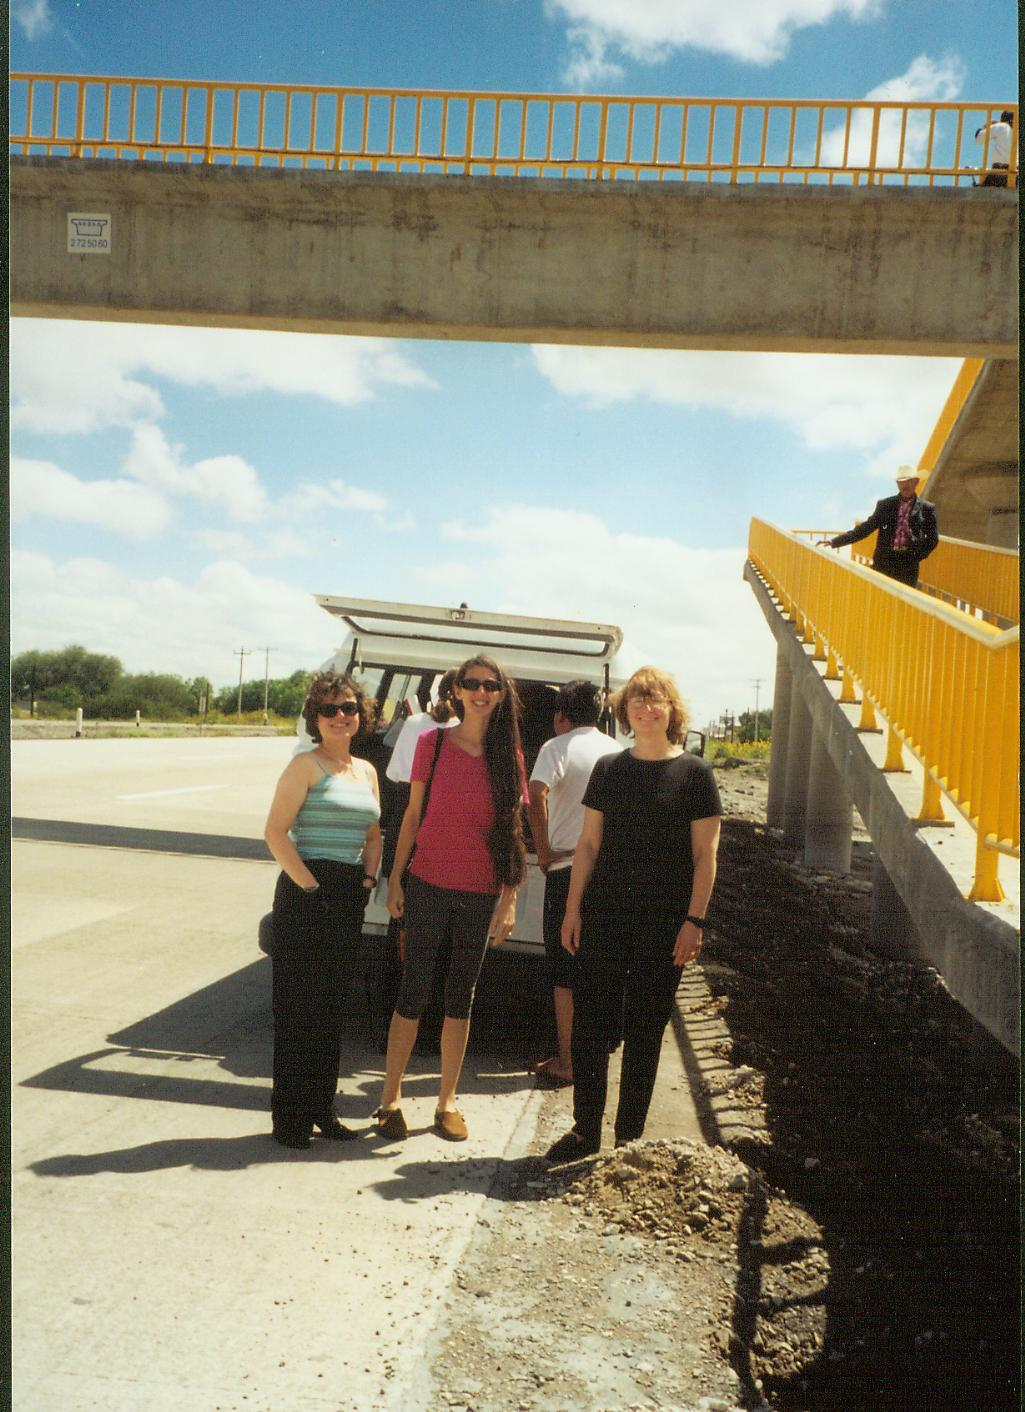 Yes, the van broke down somewhere in sunny Mexico, c. 2000